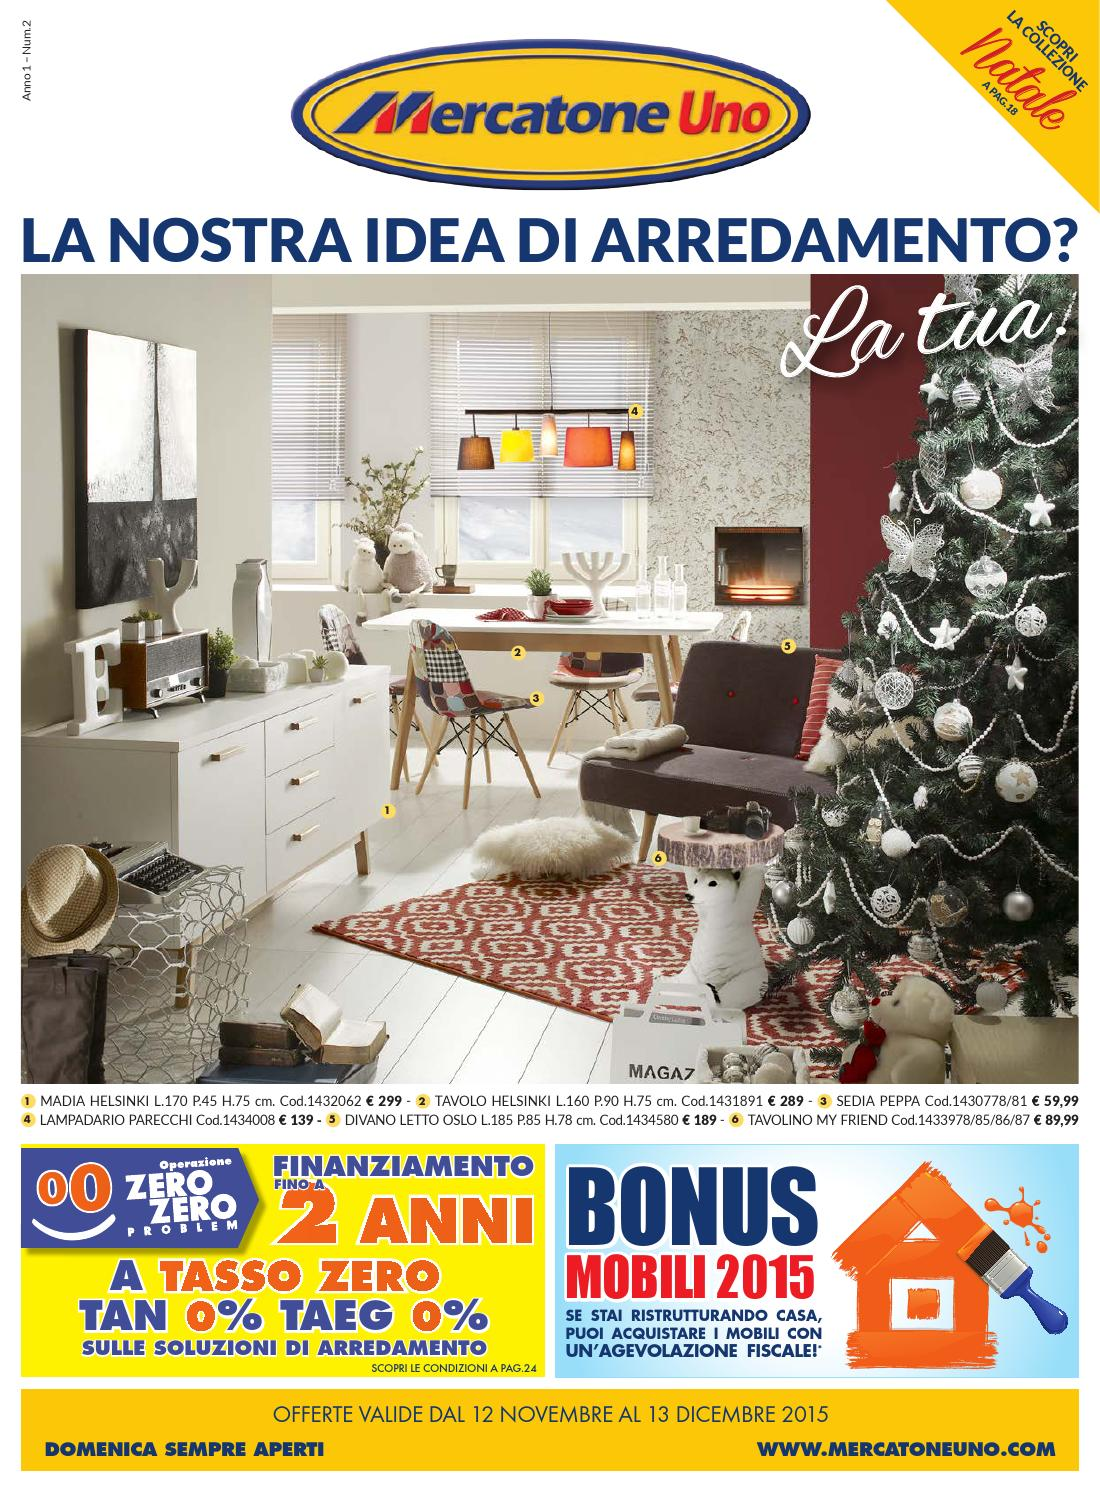 Mercatoneuno 13dic by volavolantino issuu for Mercatone uno madia